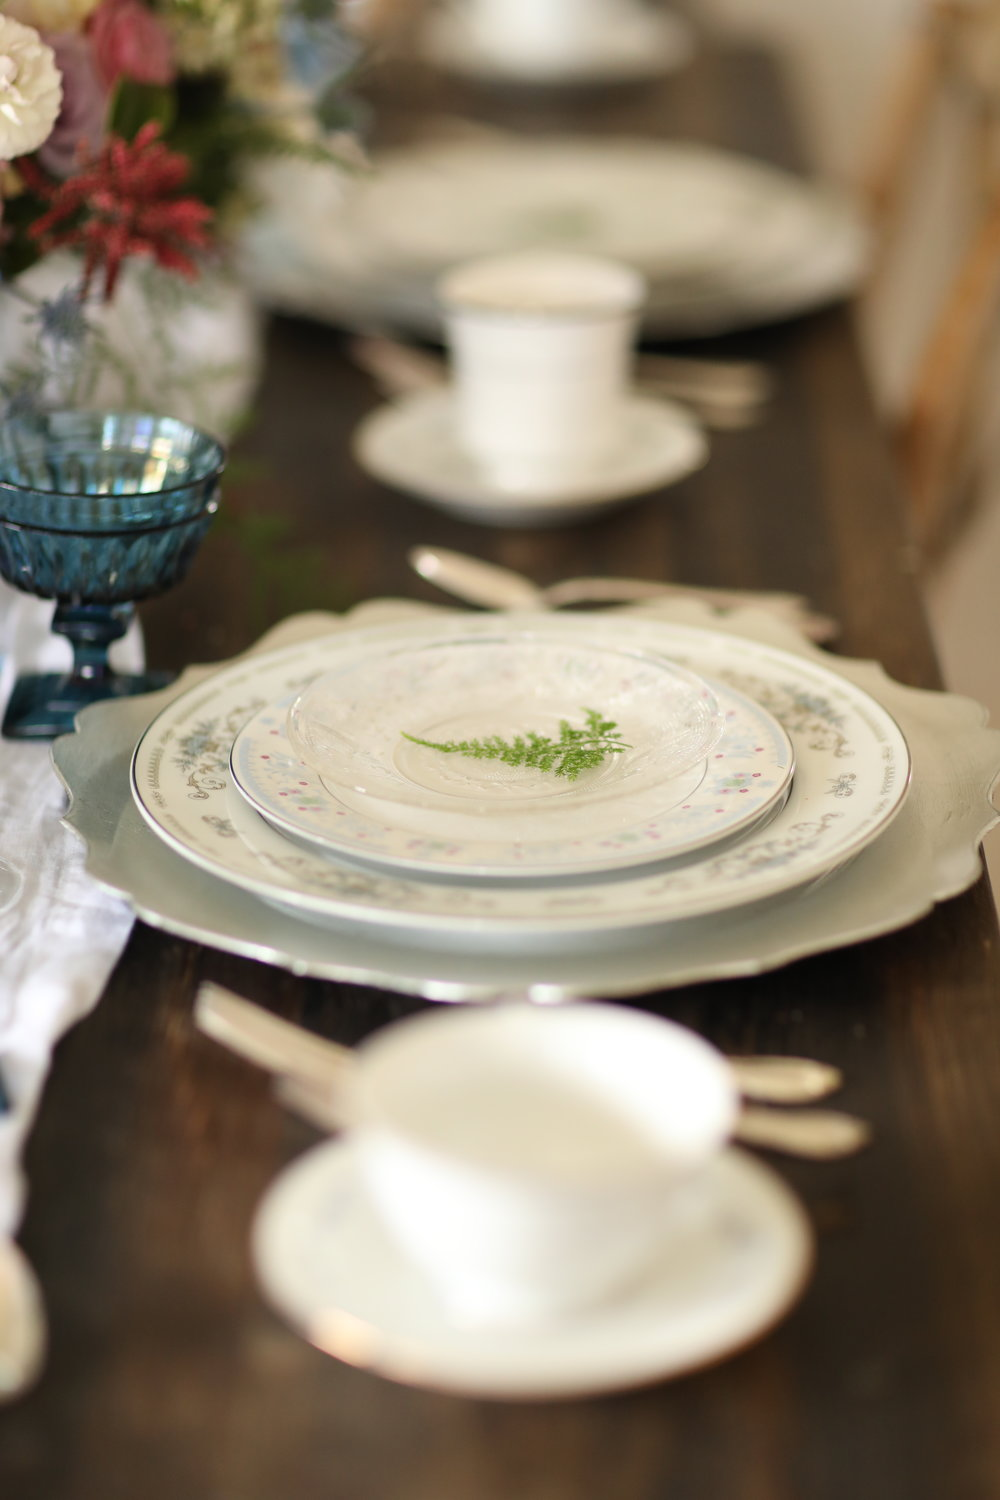 Charger plates used at a bridal party to enhance place settings of china.